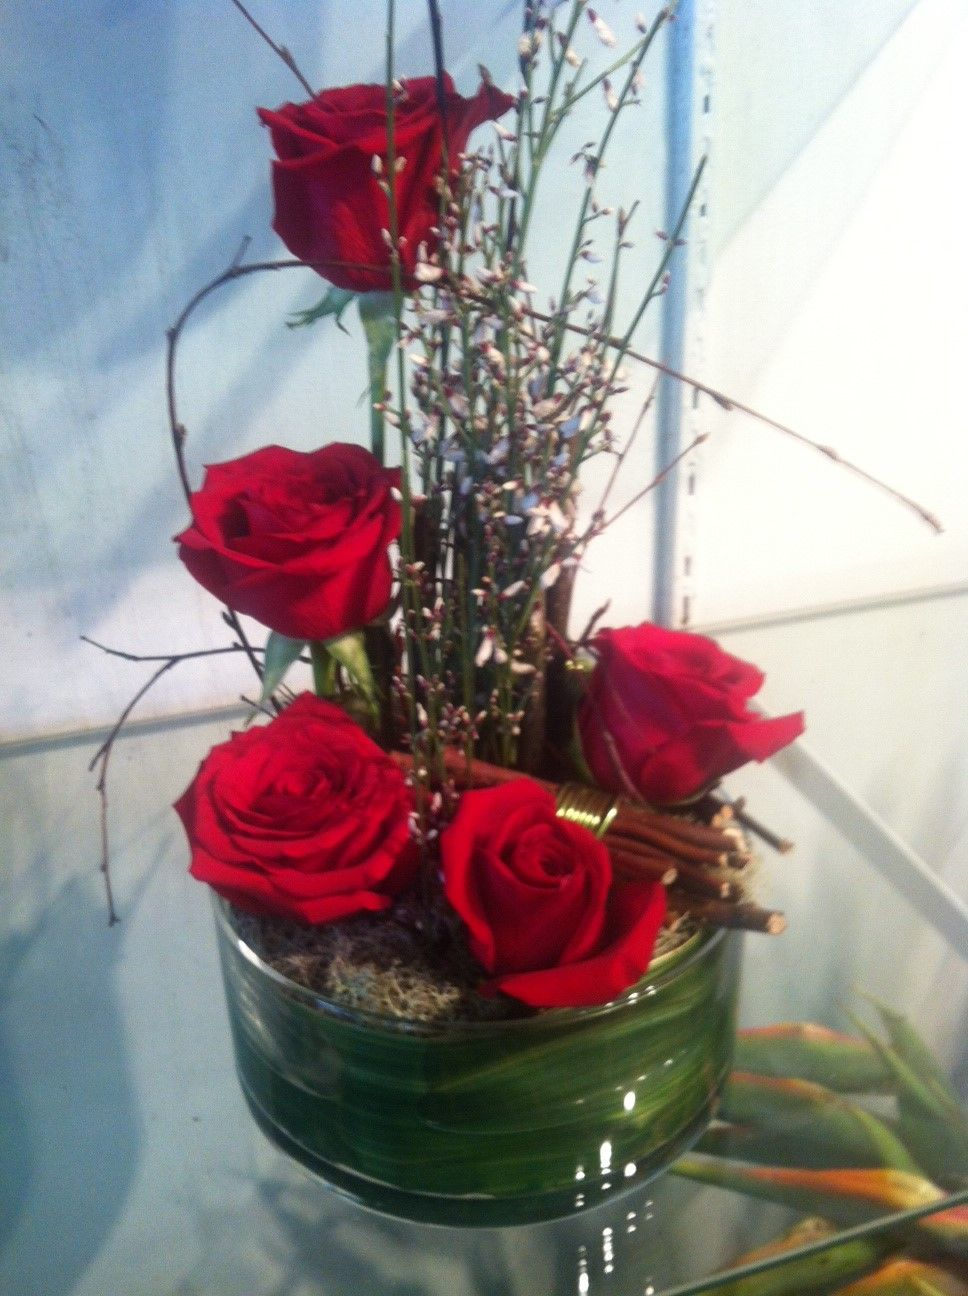 Desk Top Rose Arrangement - perfect and different to say you love someone special!